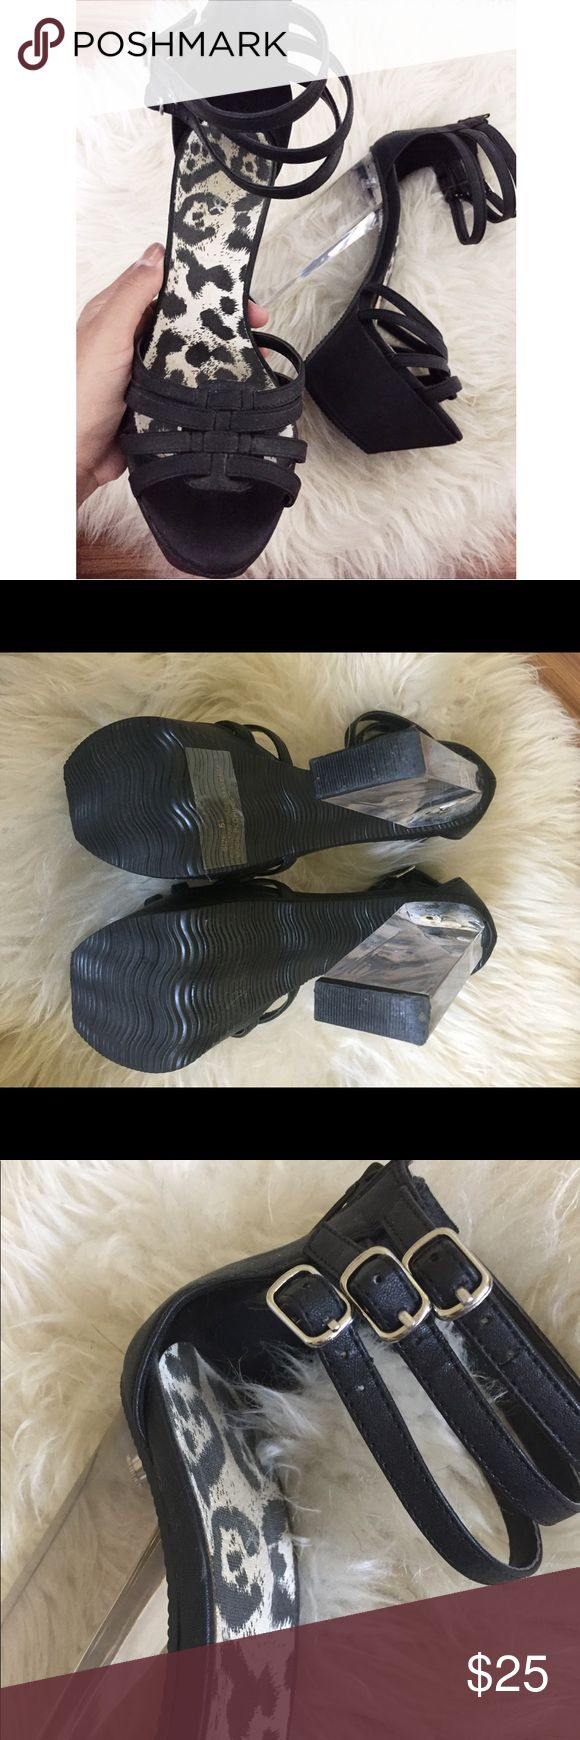 Clear heel shoes These have a little sign of wear on the insole but other than that they are in great condition. They have a zipper for easy access so you don't have to undo the buckles every time. Shoes Heels